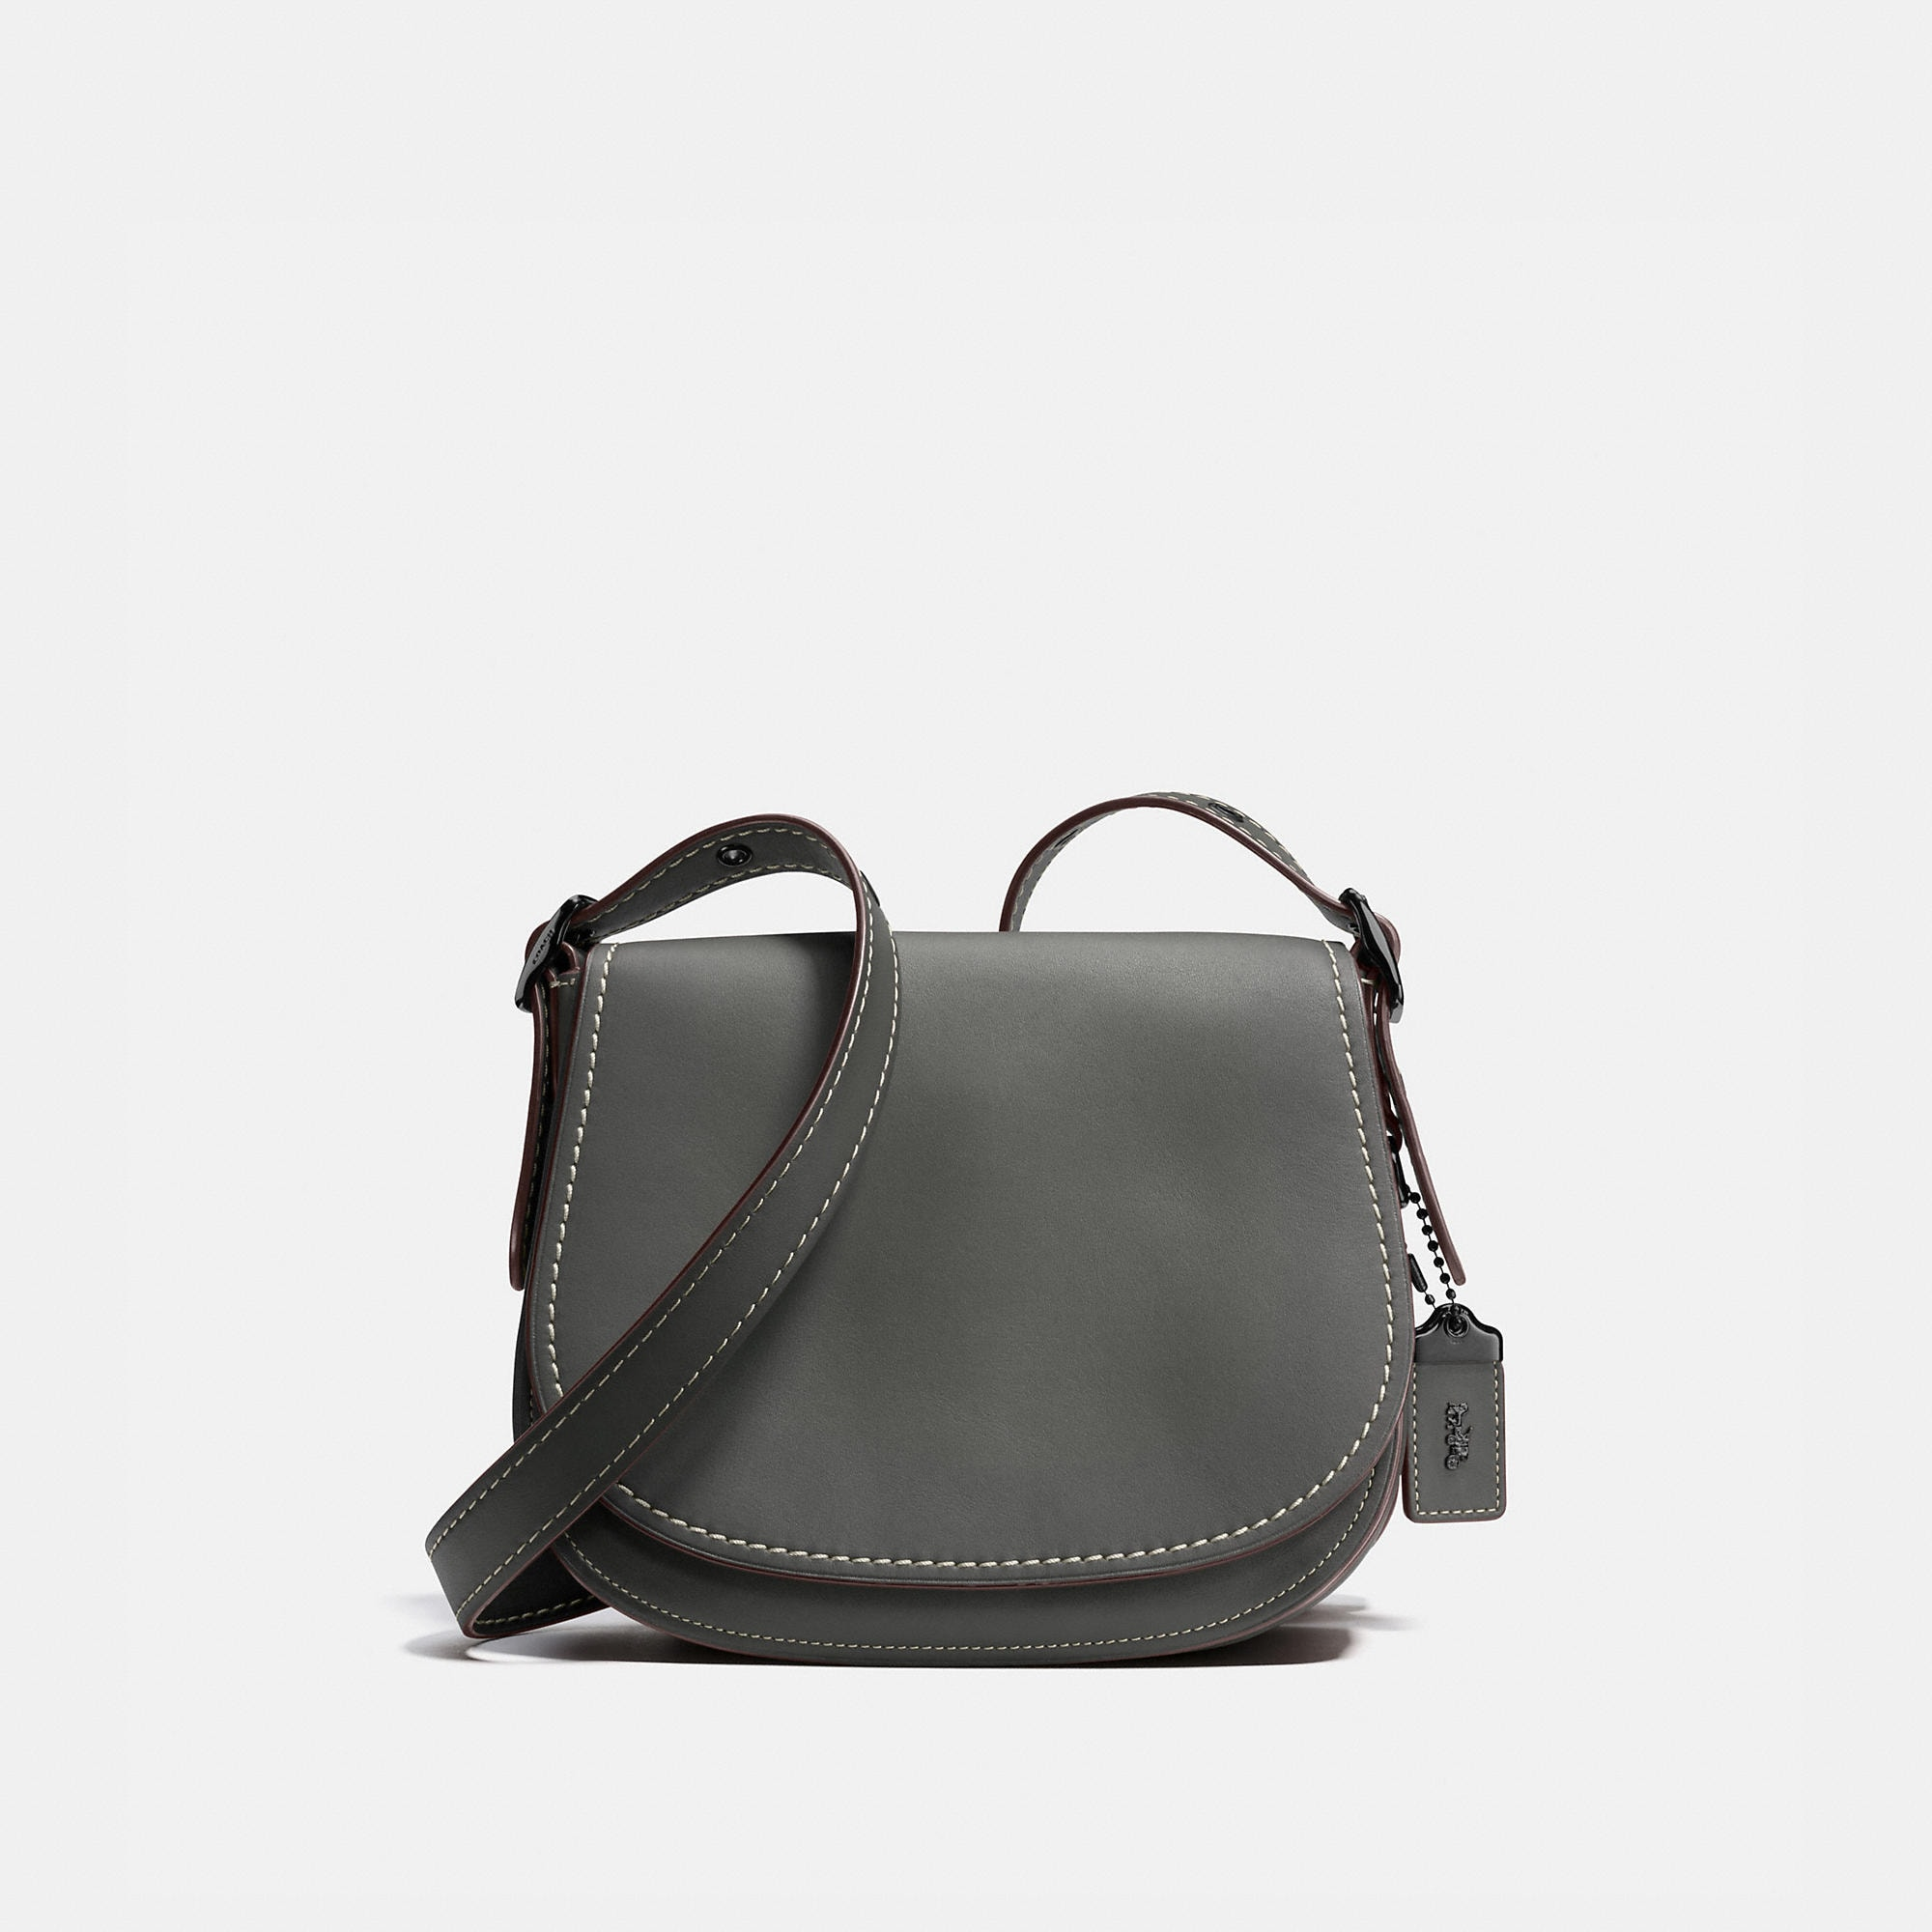 Coach Saddle Bag 23 In Burnished Glovetanned Leather